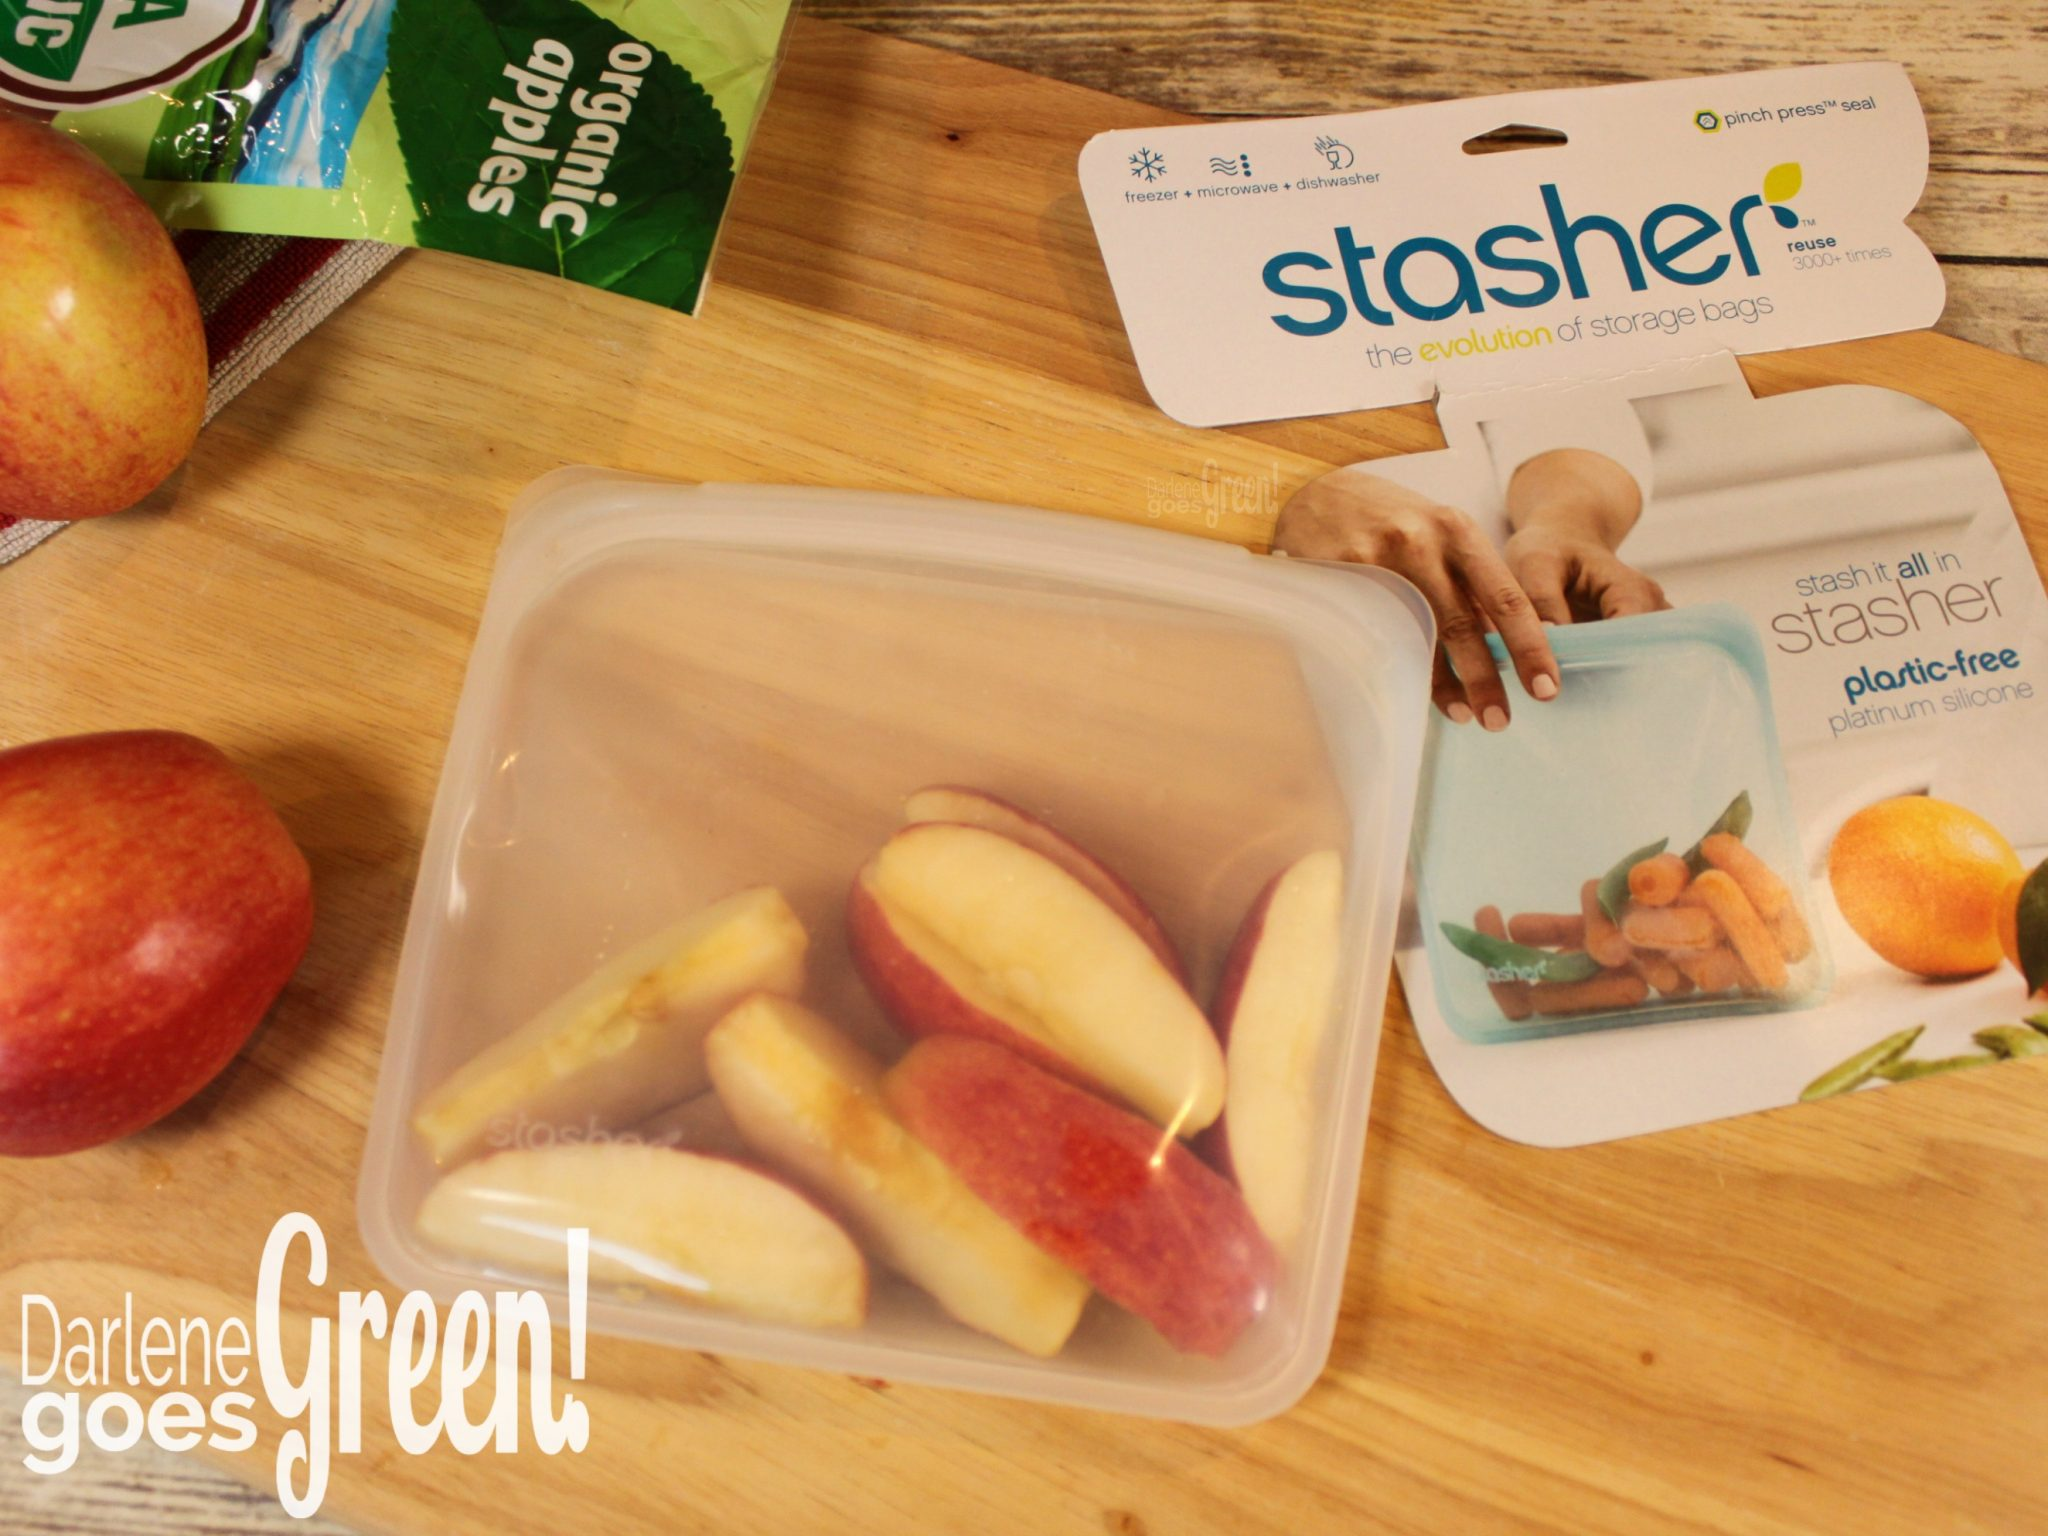 Stasher Bag Reusable and Eco-friendly Sandwich Bag Alternative